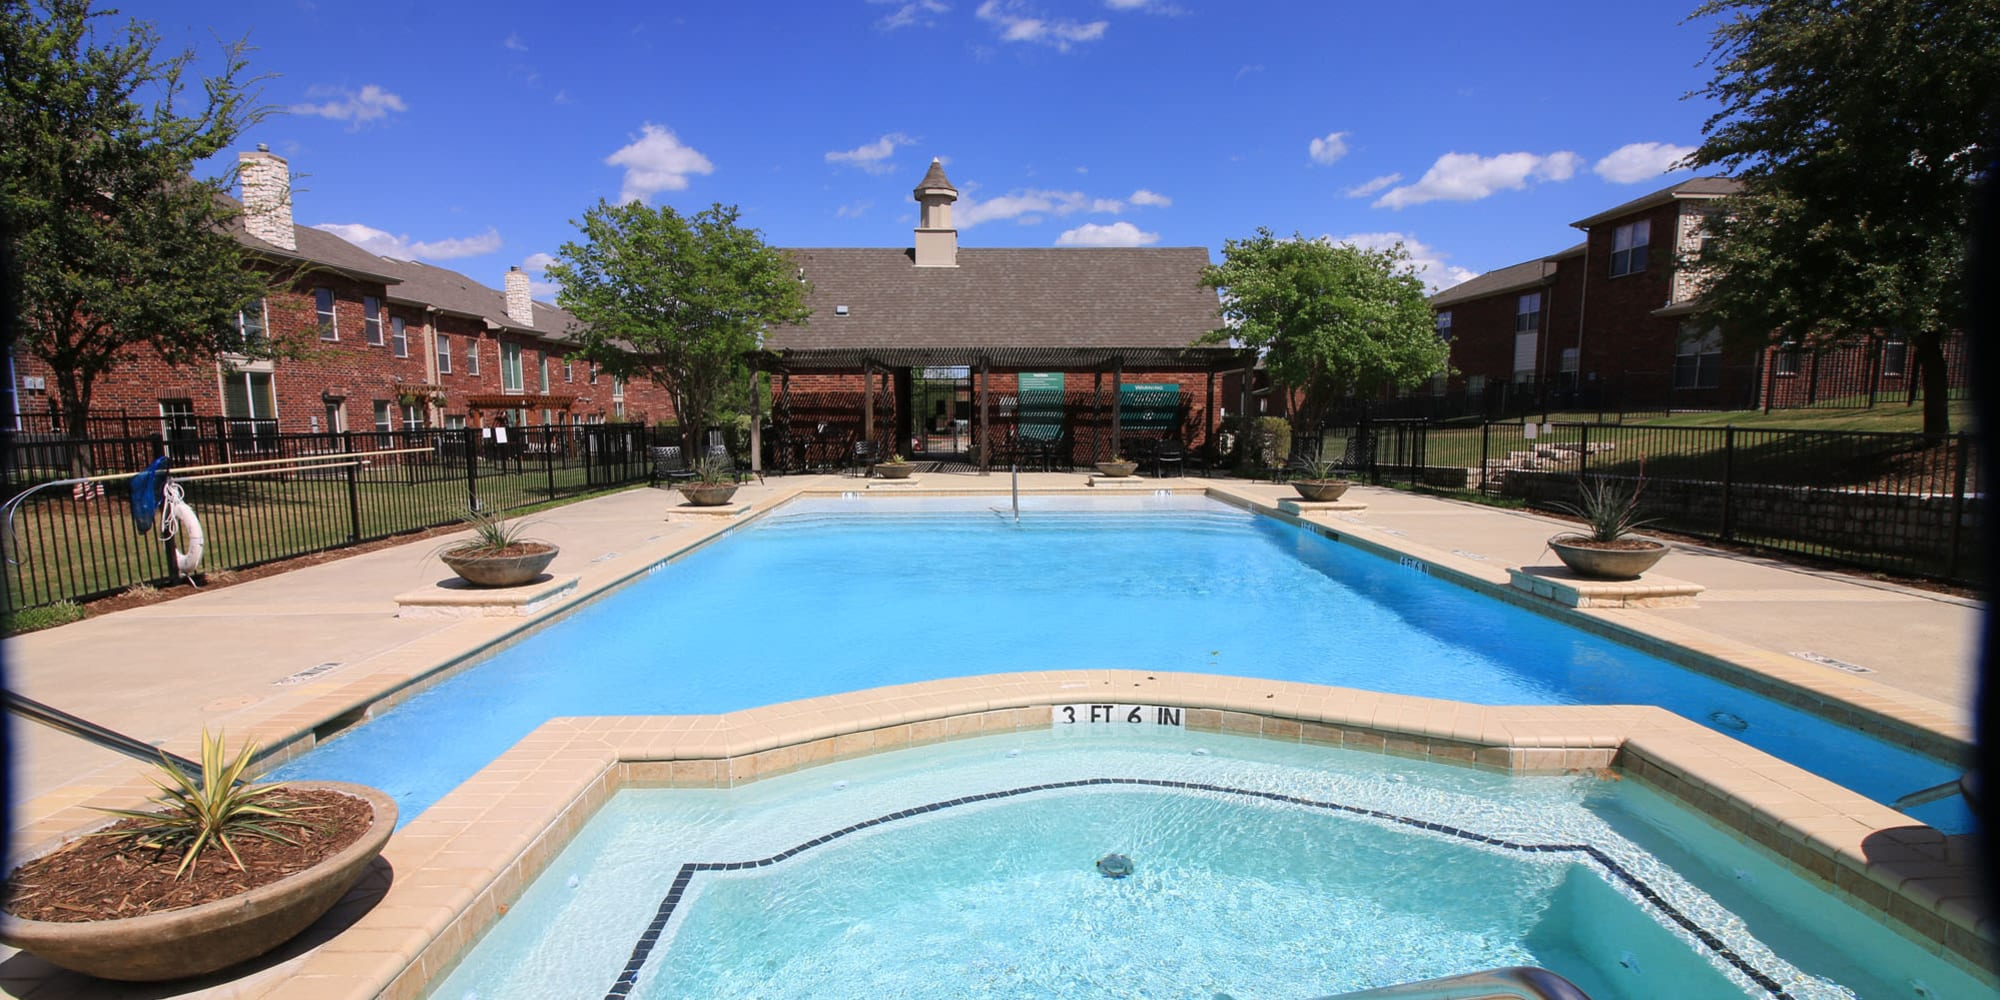 Oaks Estates of Coppell apartments in Coppell, Texas